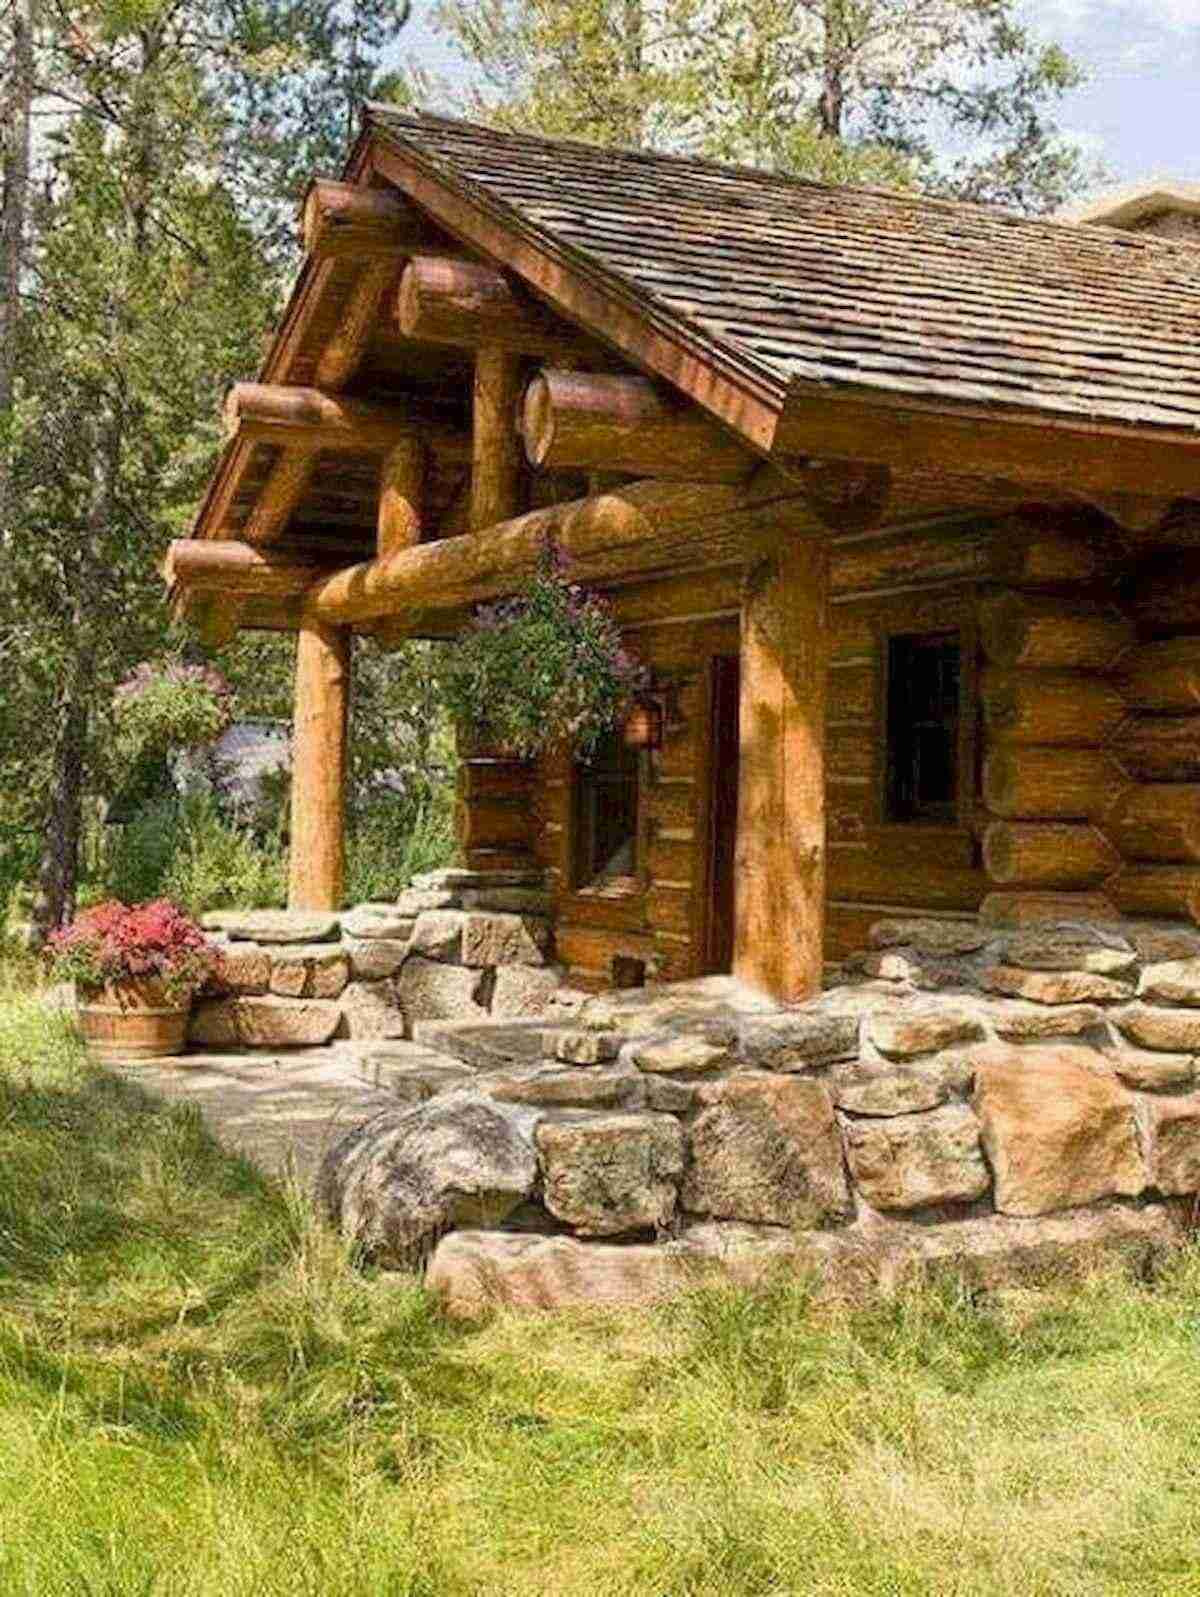 75 Great Log Cabin Homes Plans Design Ideas 19